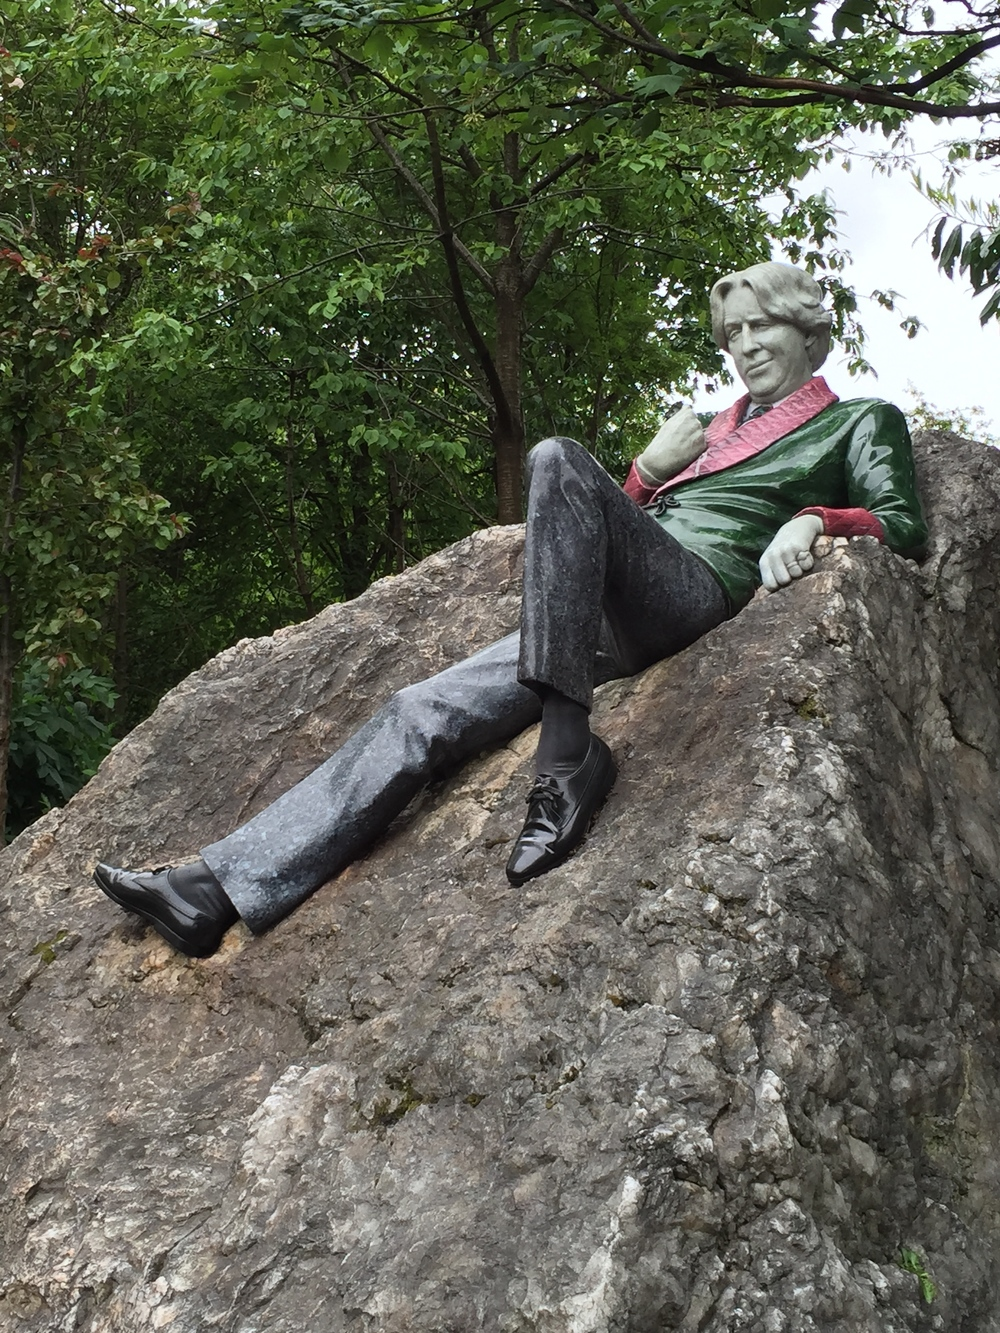 Marble sculpture in Merrion Square by artist Danny Osborne(1997).